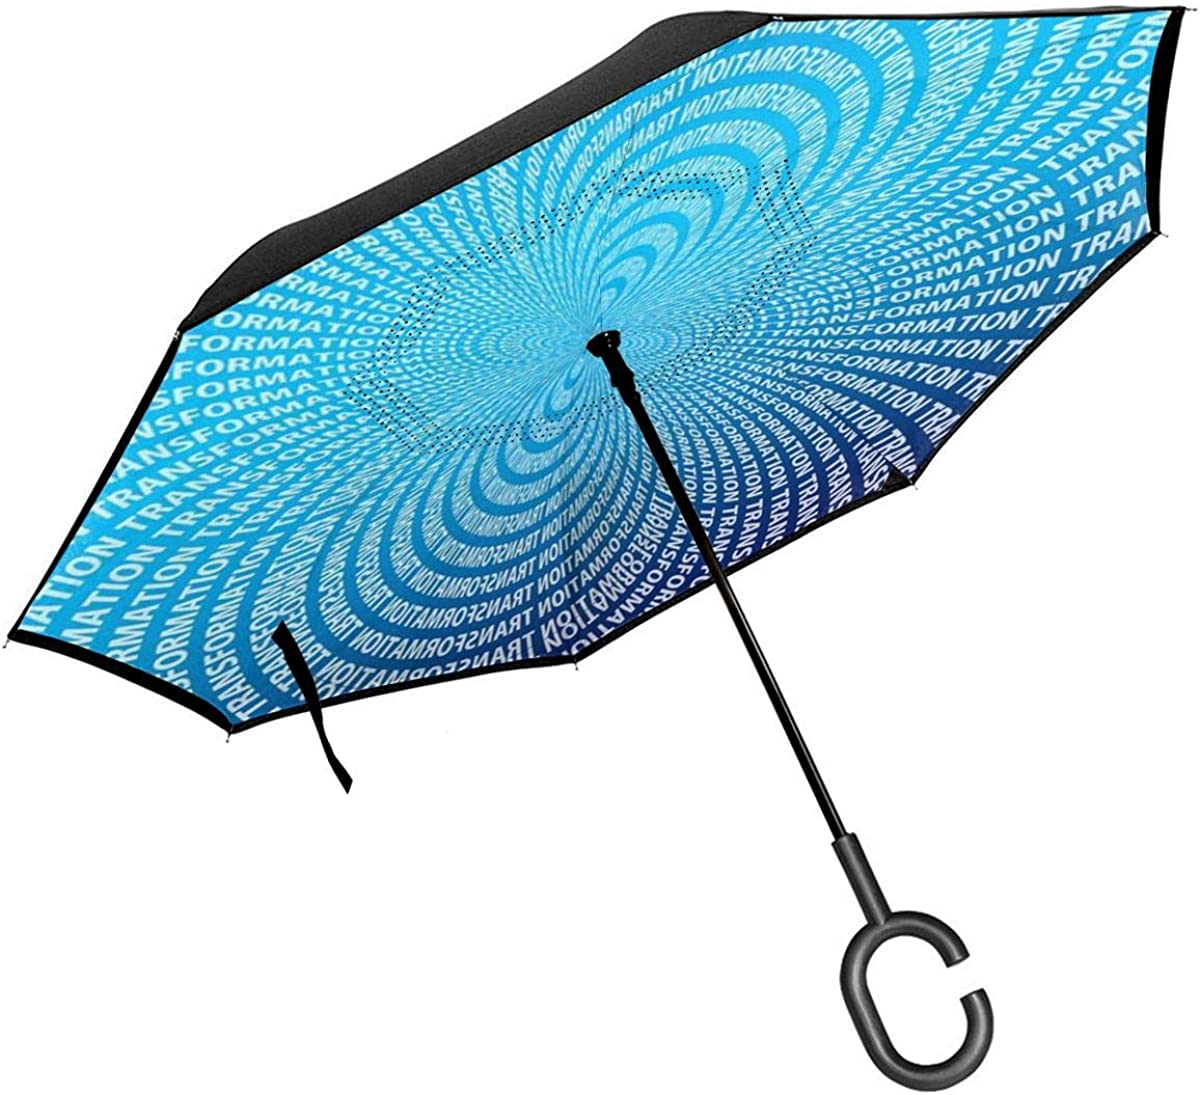 Reverse Umbrella Double Layer Inverted Umbrellas For Car Rain Outdoor With C-Shaped Handle Transformation Concentration Center Ellipse Form Blue Customized